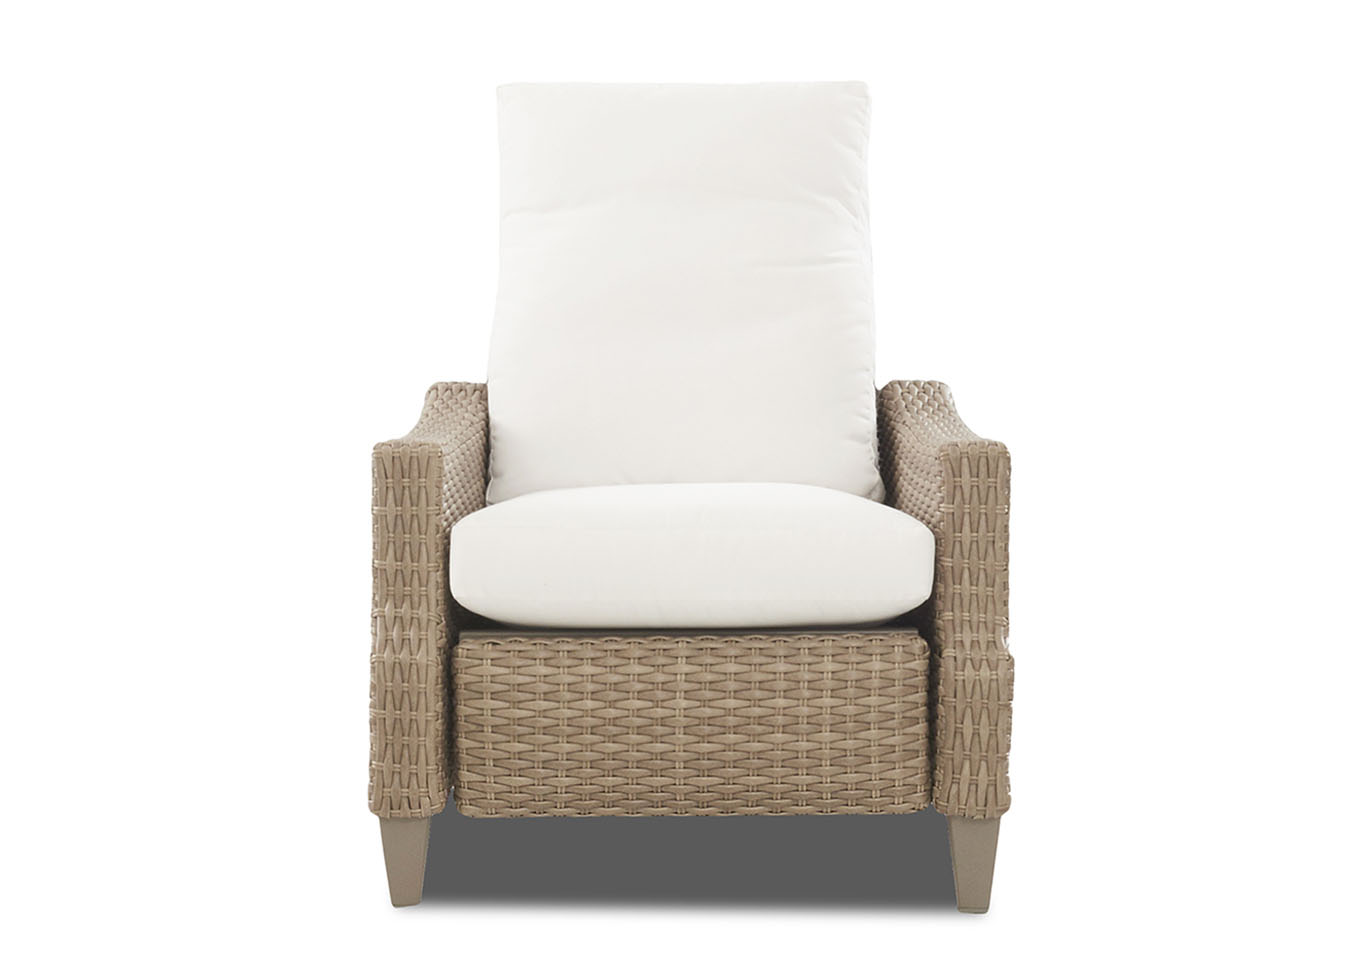 Belmeade White Fabric Wicker Reclining Chair,Klaussner Home Furnishings